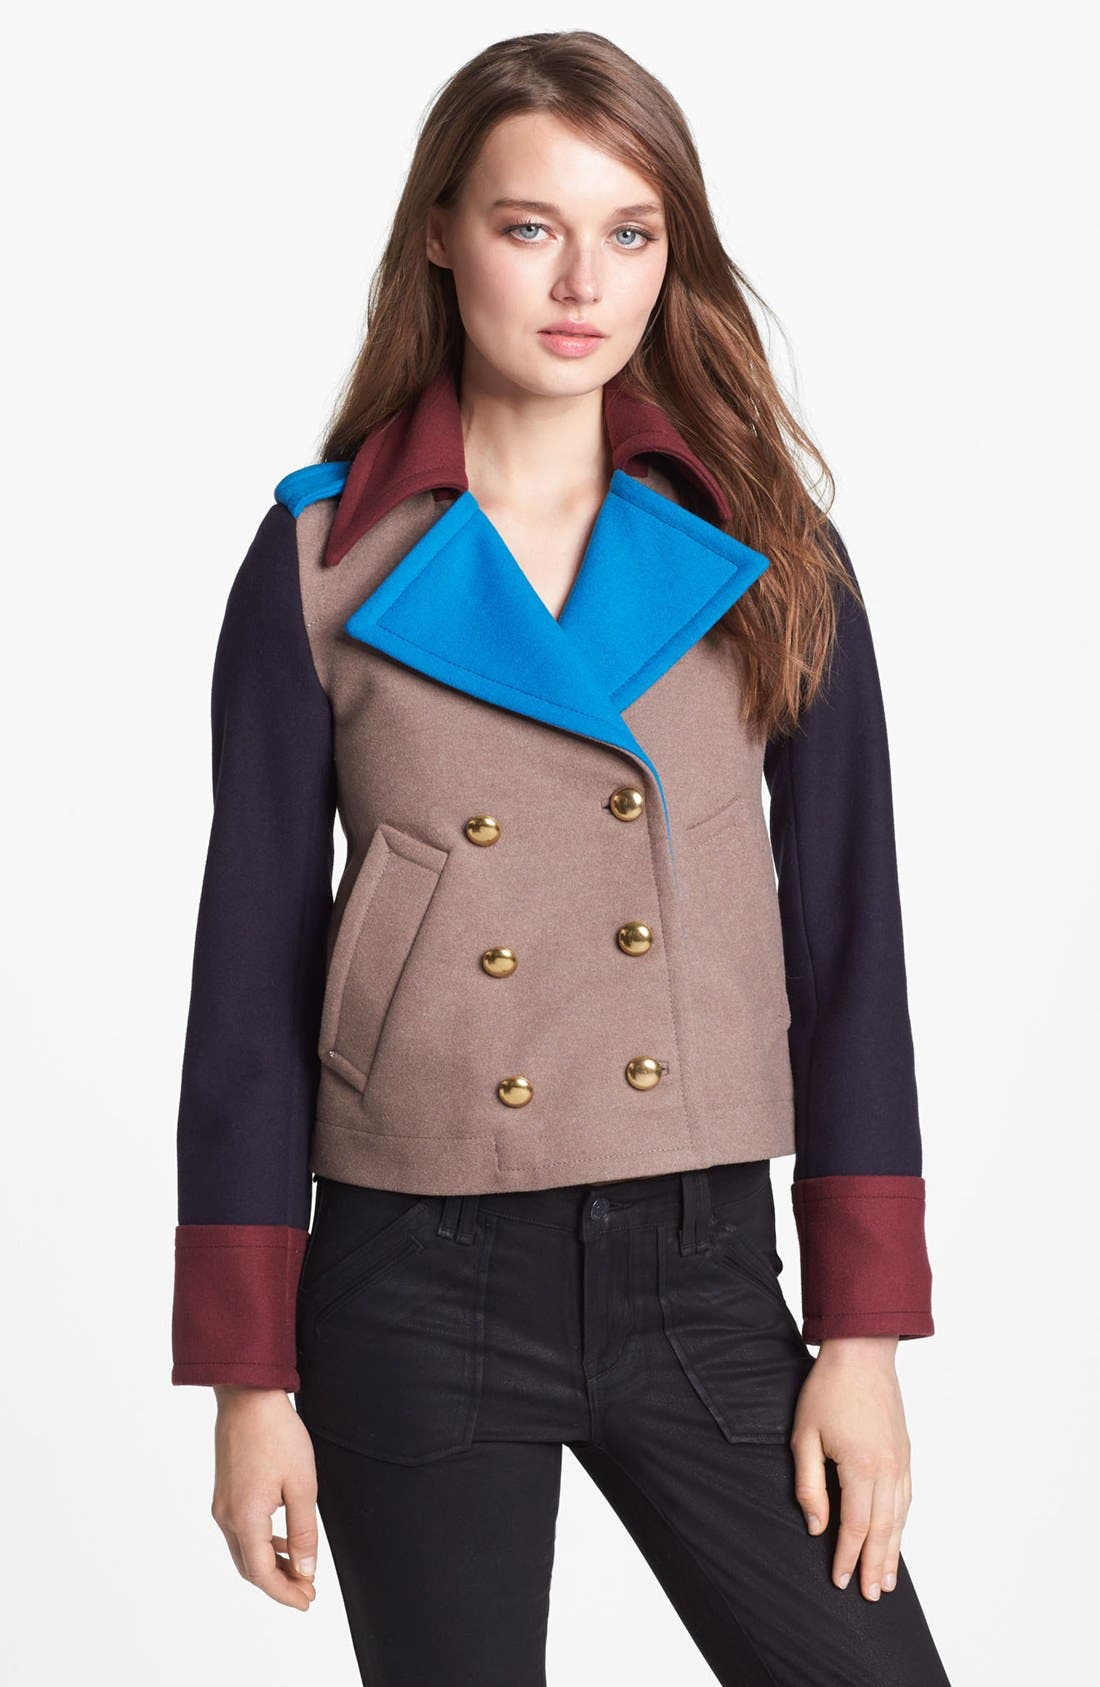 Alternate Image 1 Selected - MARC BY MARC JACOBS 'Nicoletta' Colorblock Crop Jacket